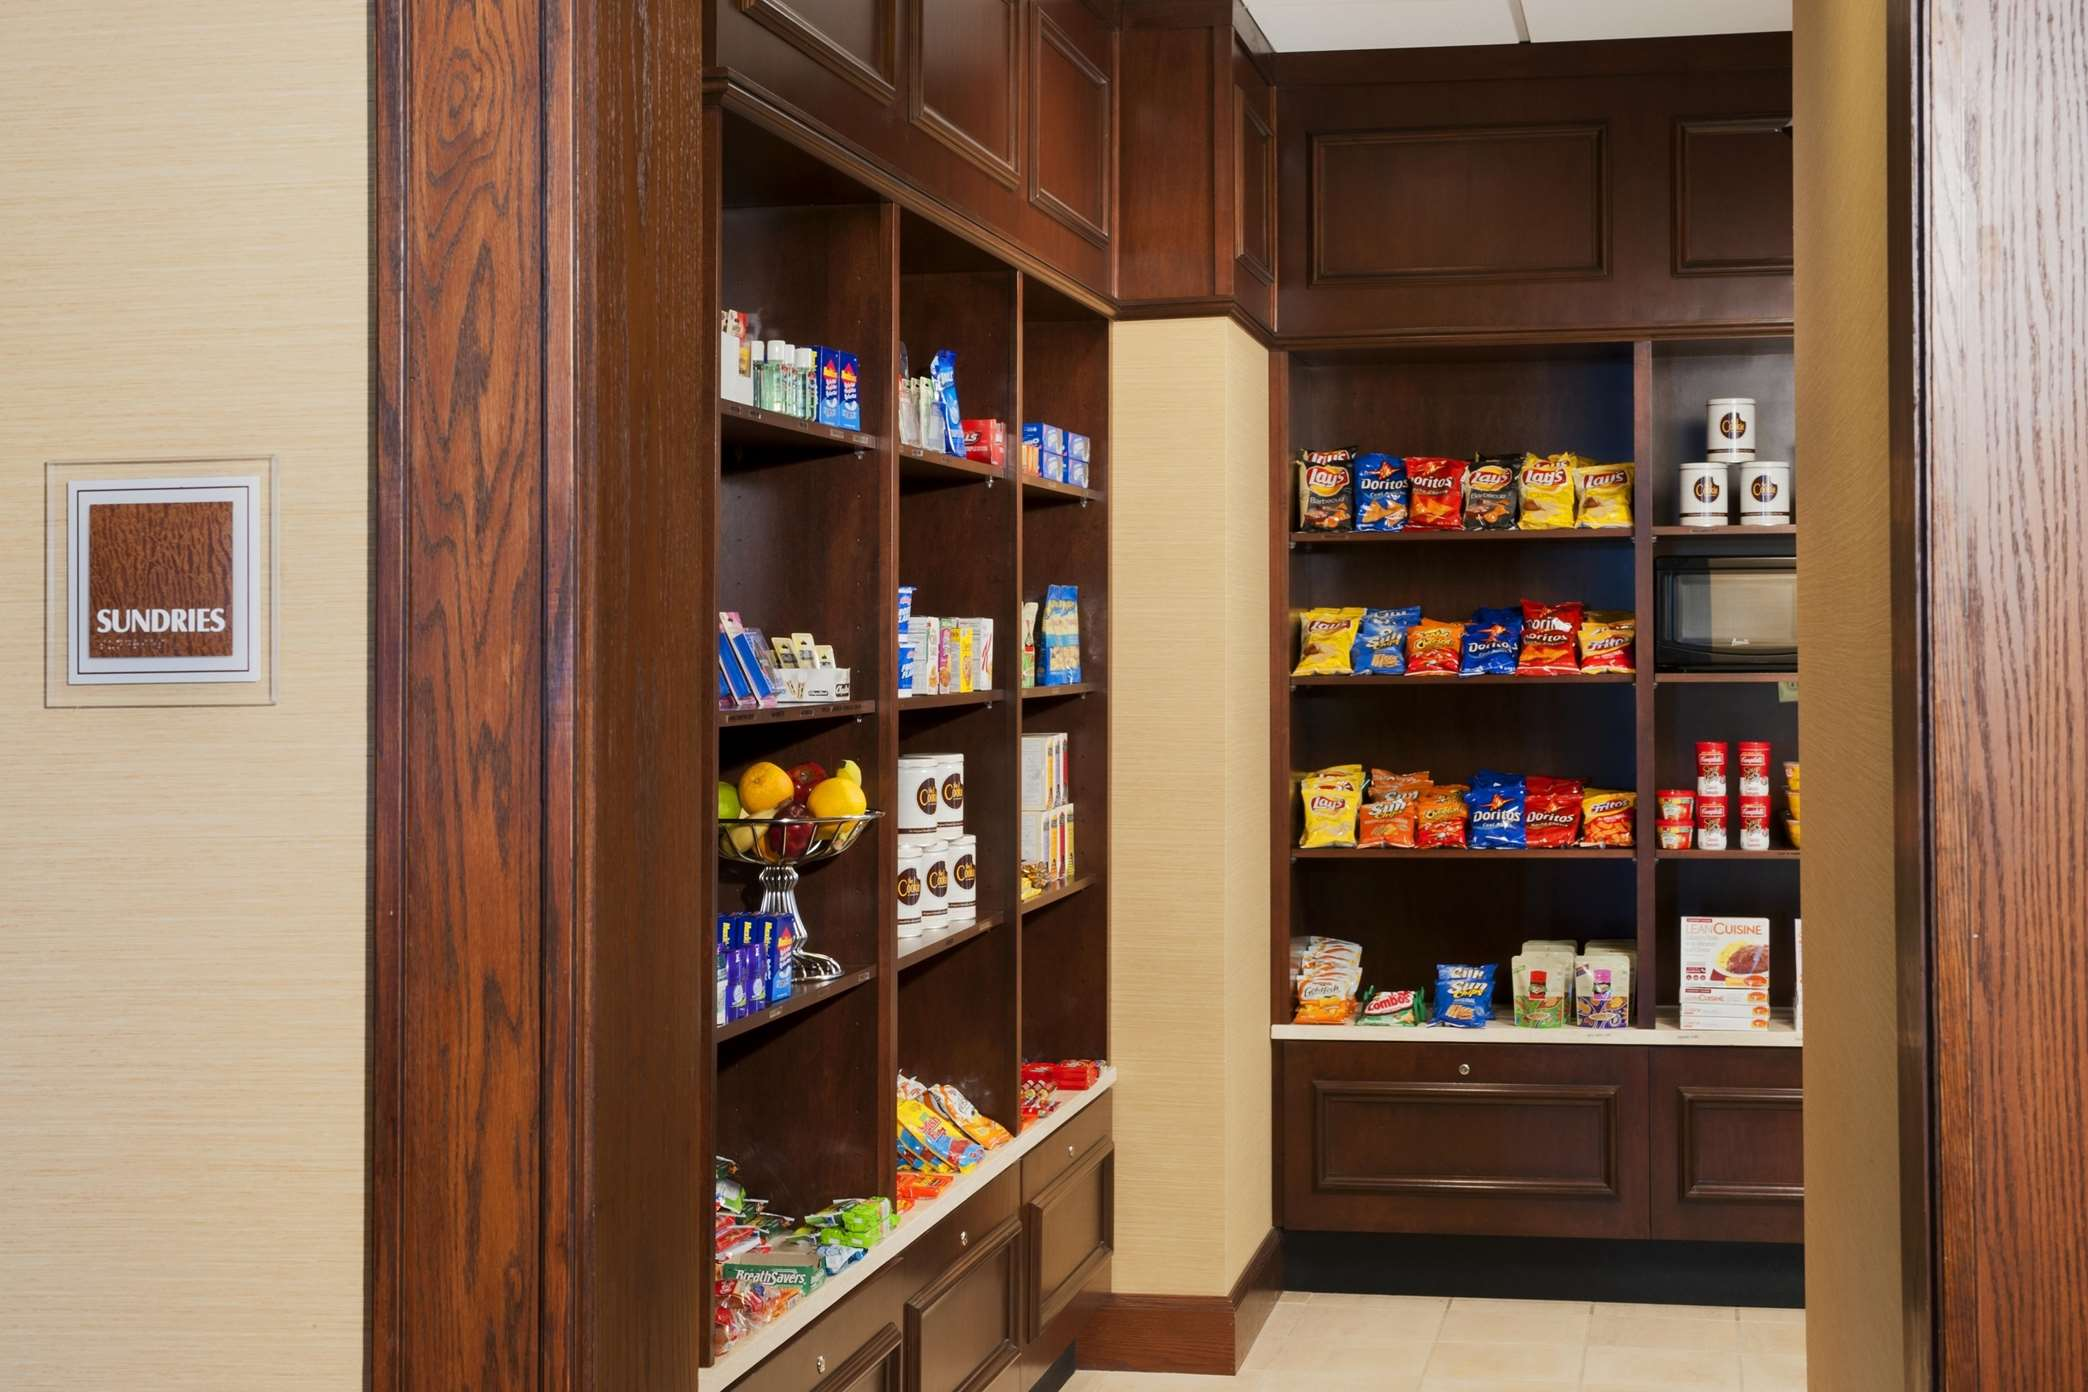 DoubleTree by Hilton Hotel Collinsville - St. Louis image 25